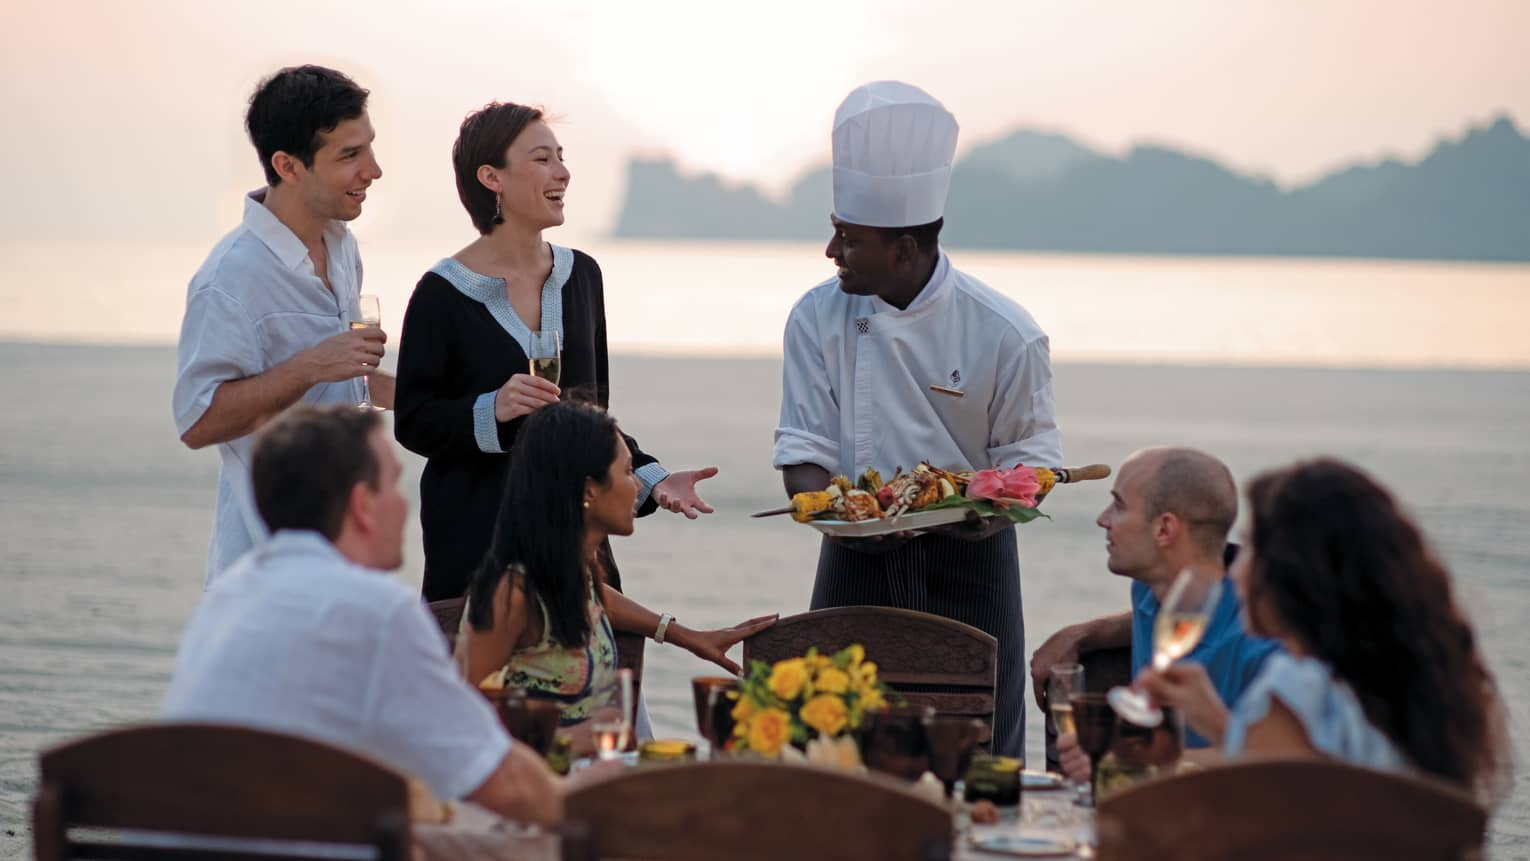 Chef presents platter of grilled meats to group of friends at beach dining table